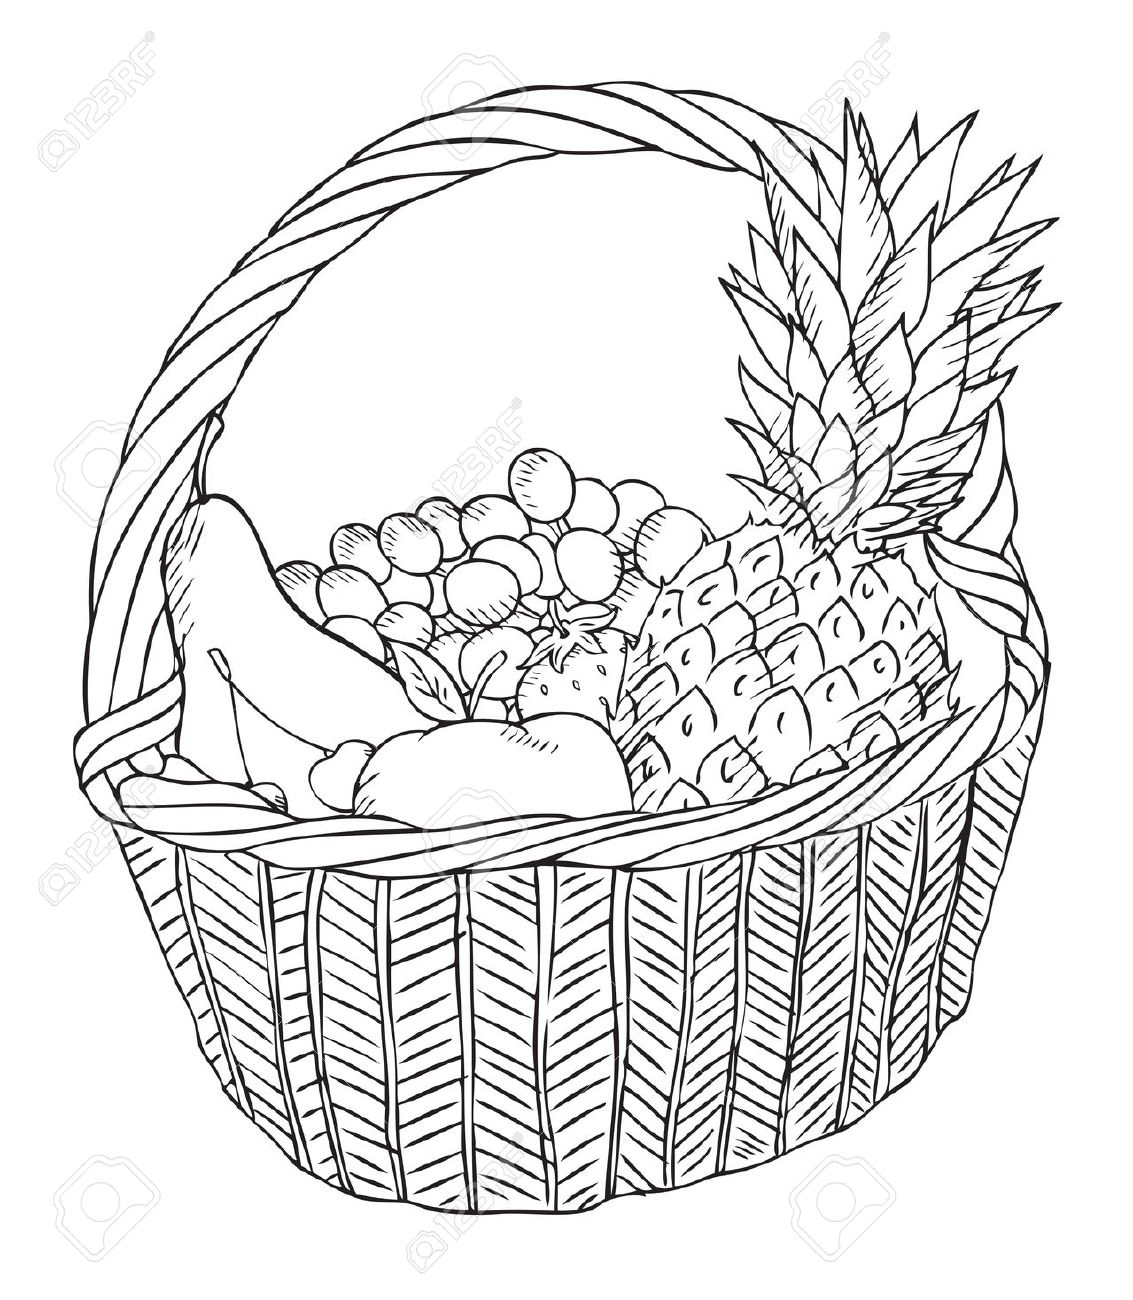 Food Basket Drawing